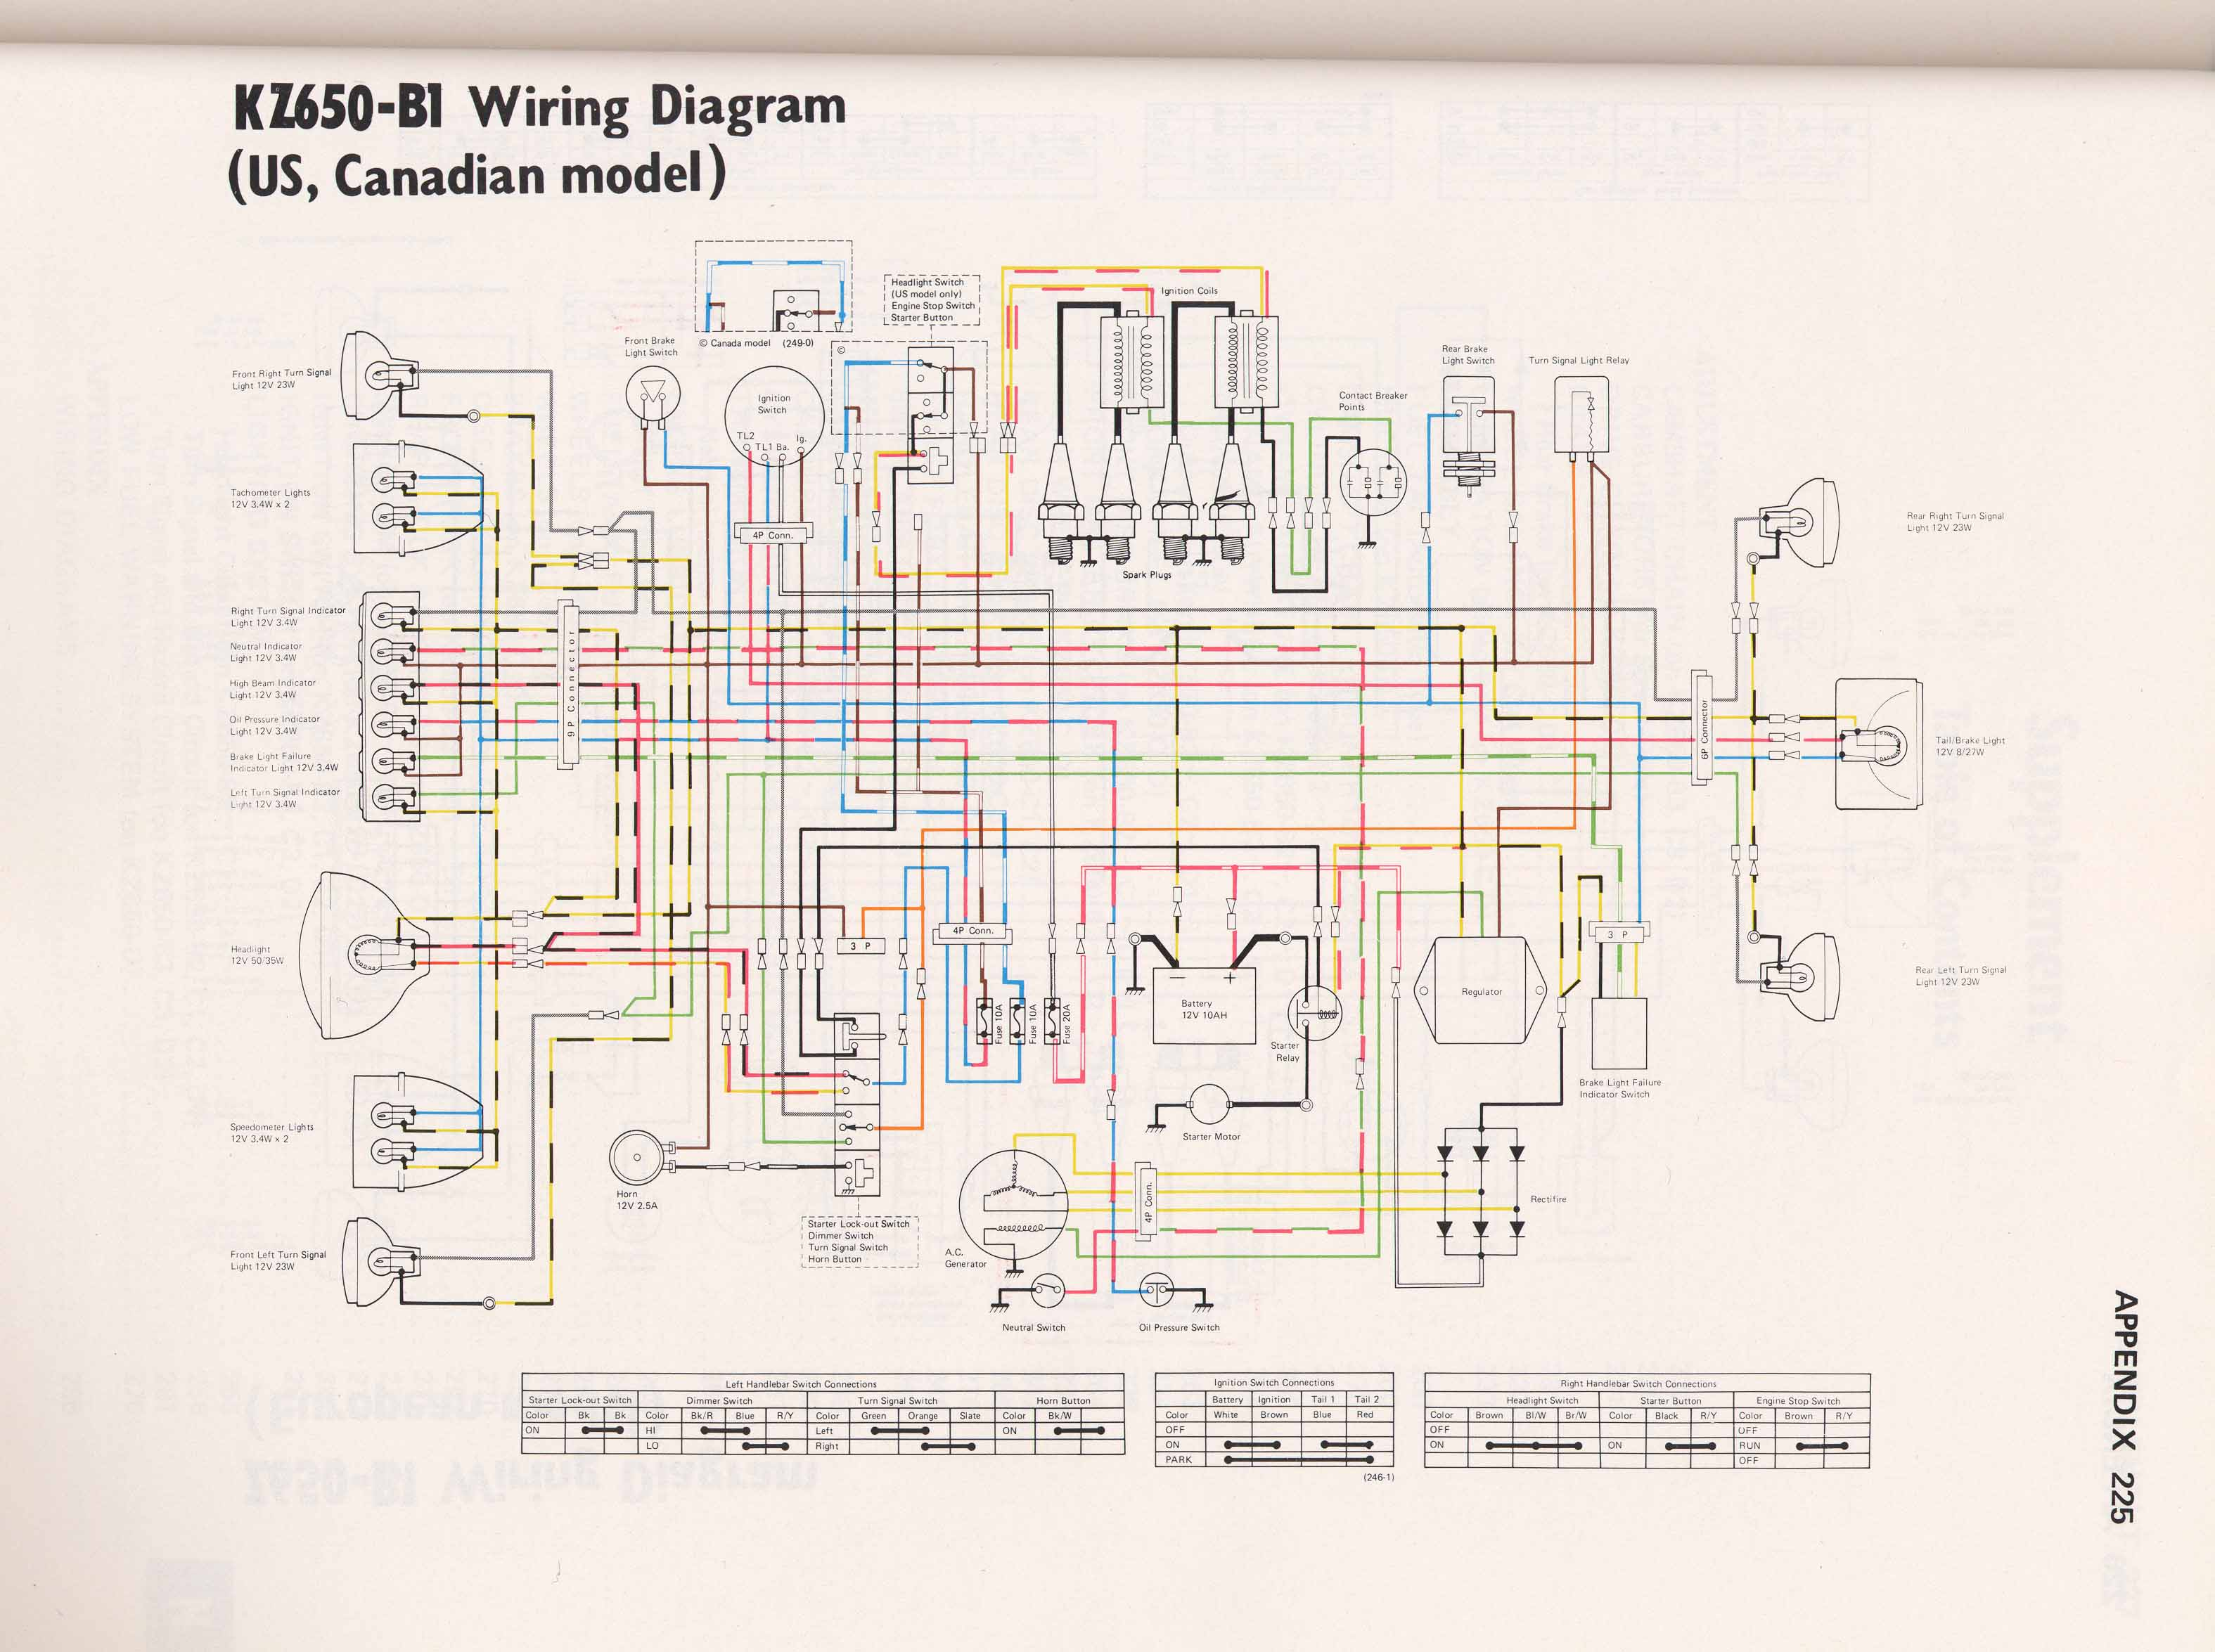 1977 kawasaki kz1000 wiring diagram 1996 toyota land cruiser electrical ewd kz650 info diagrams